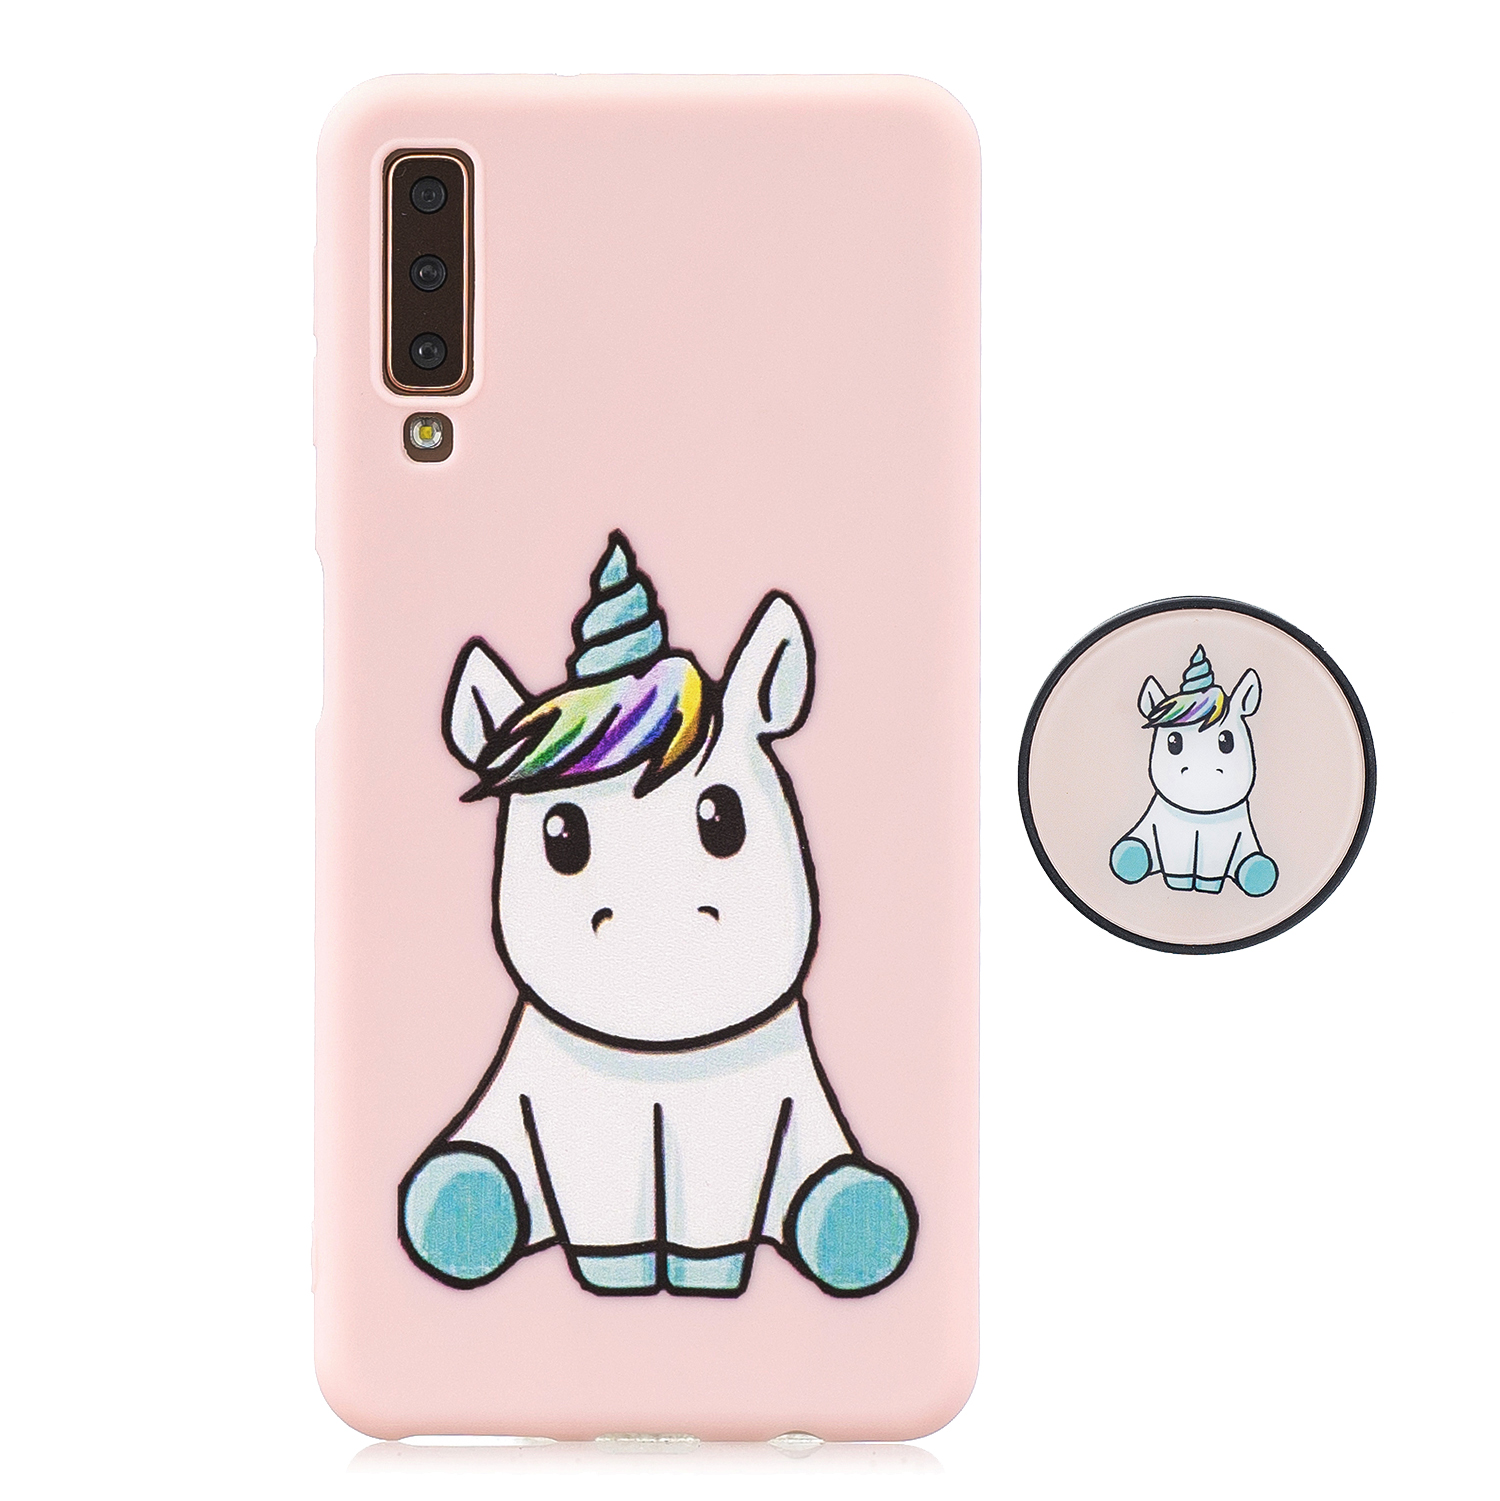 For Samsung A7 2018 A750 Full Cover Protective Phone Case Cartoon Pattern Solid Color TPU Phone Case with Adjustable Bracket 6